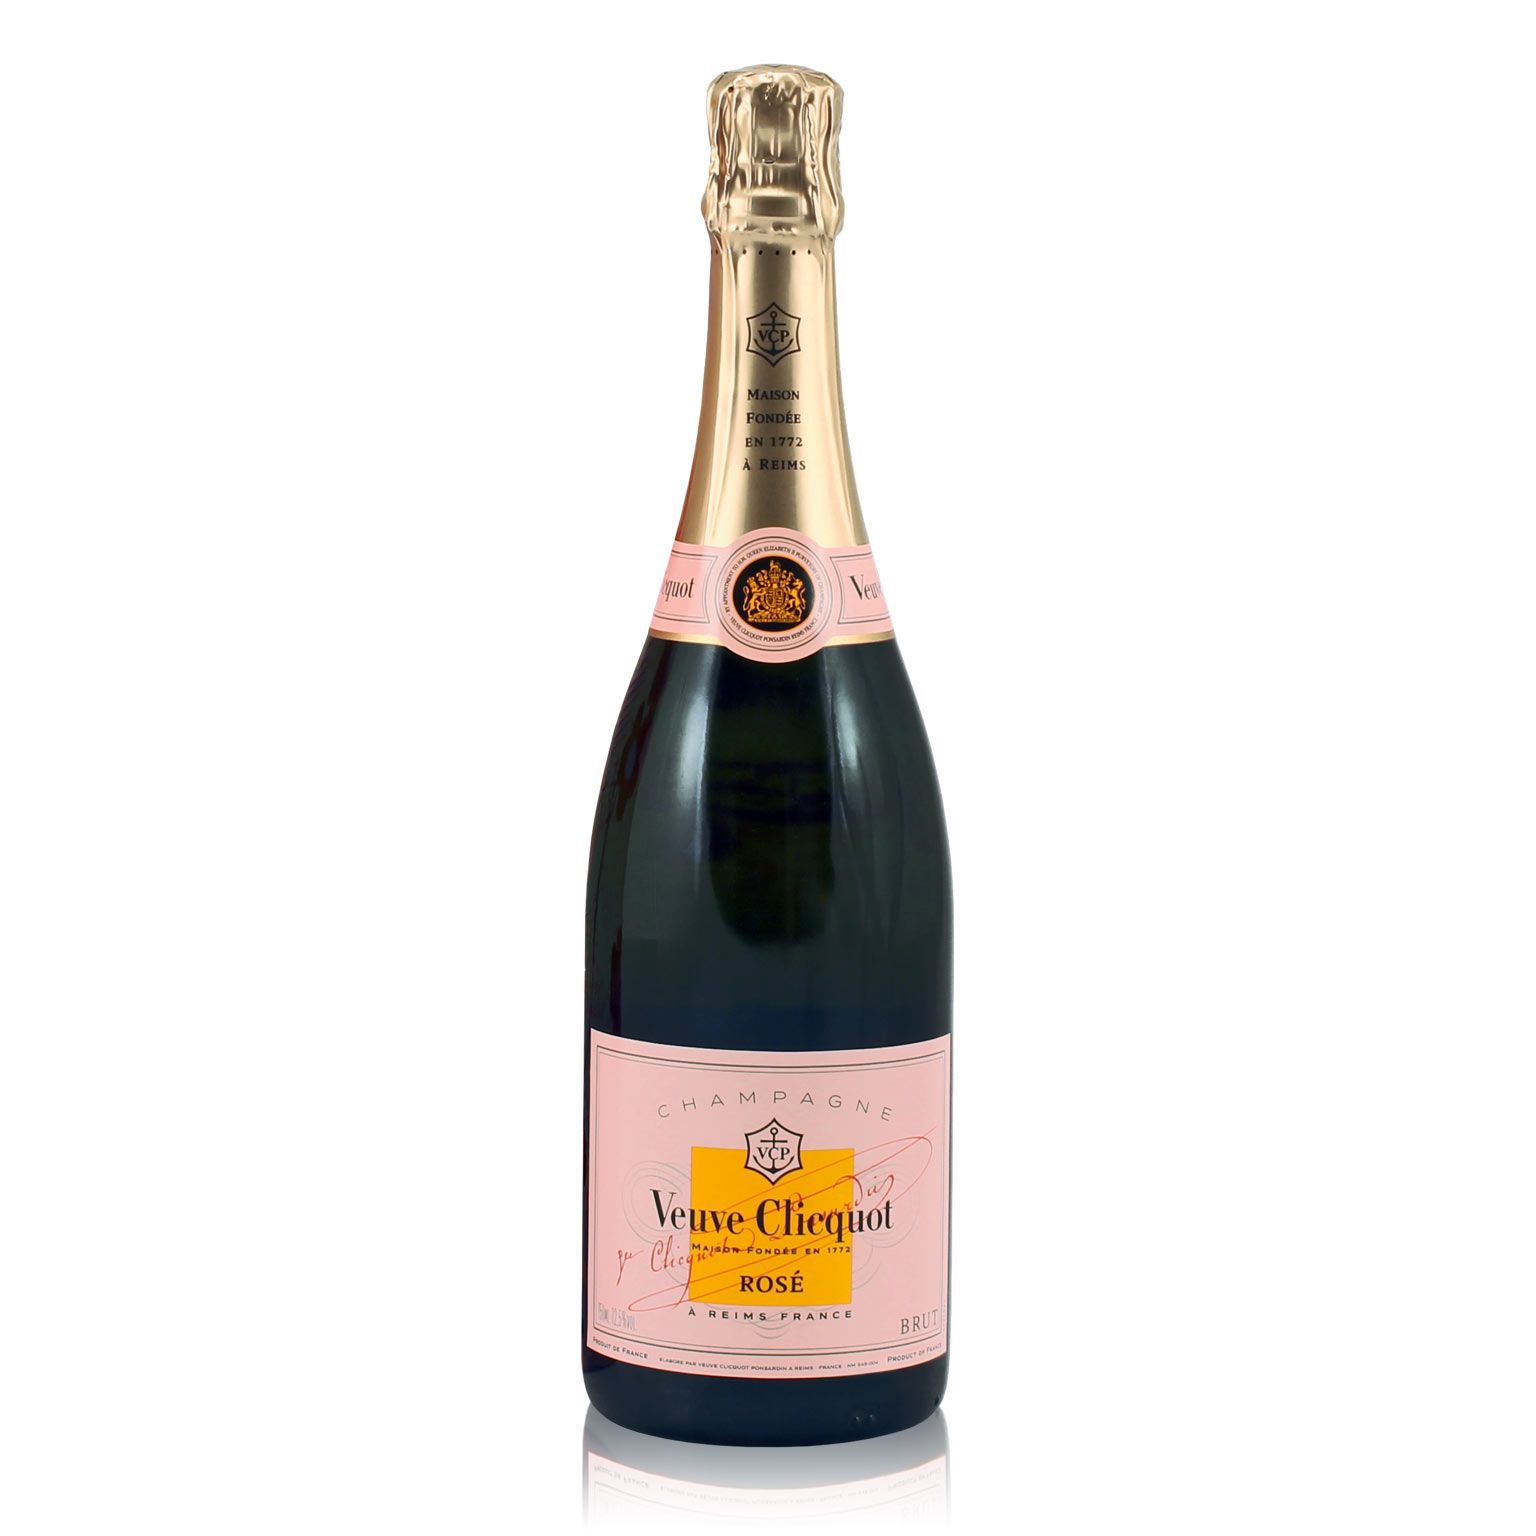 Bottle of champagne with a pink and yellow label.